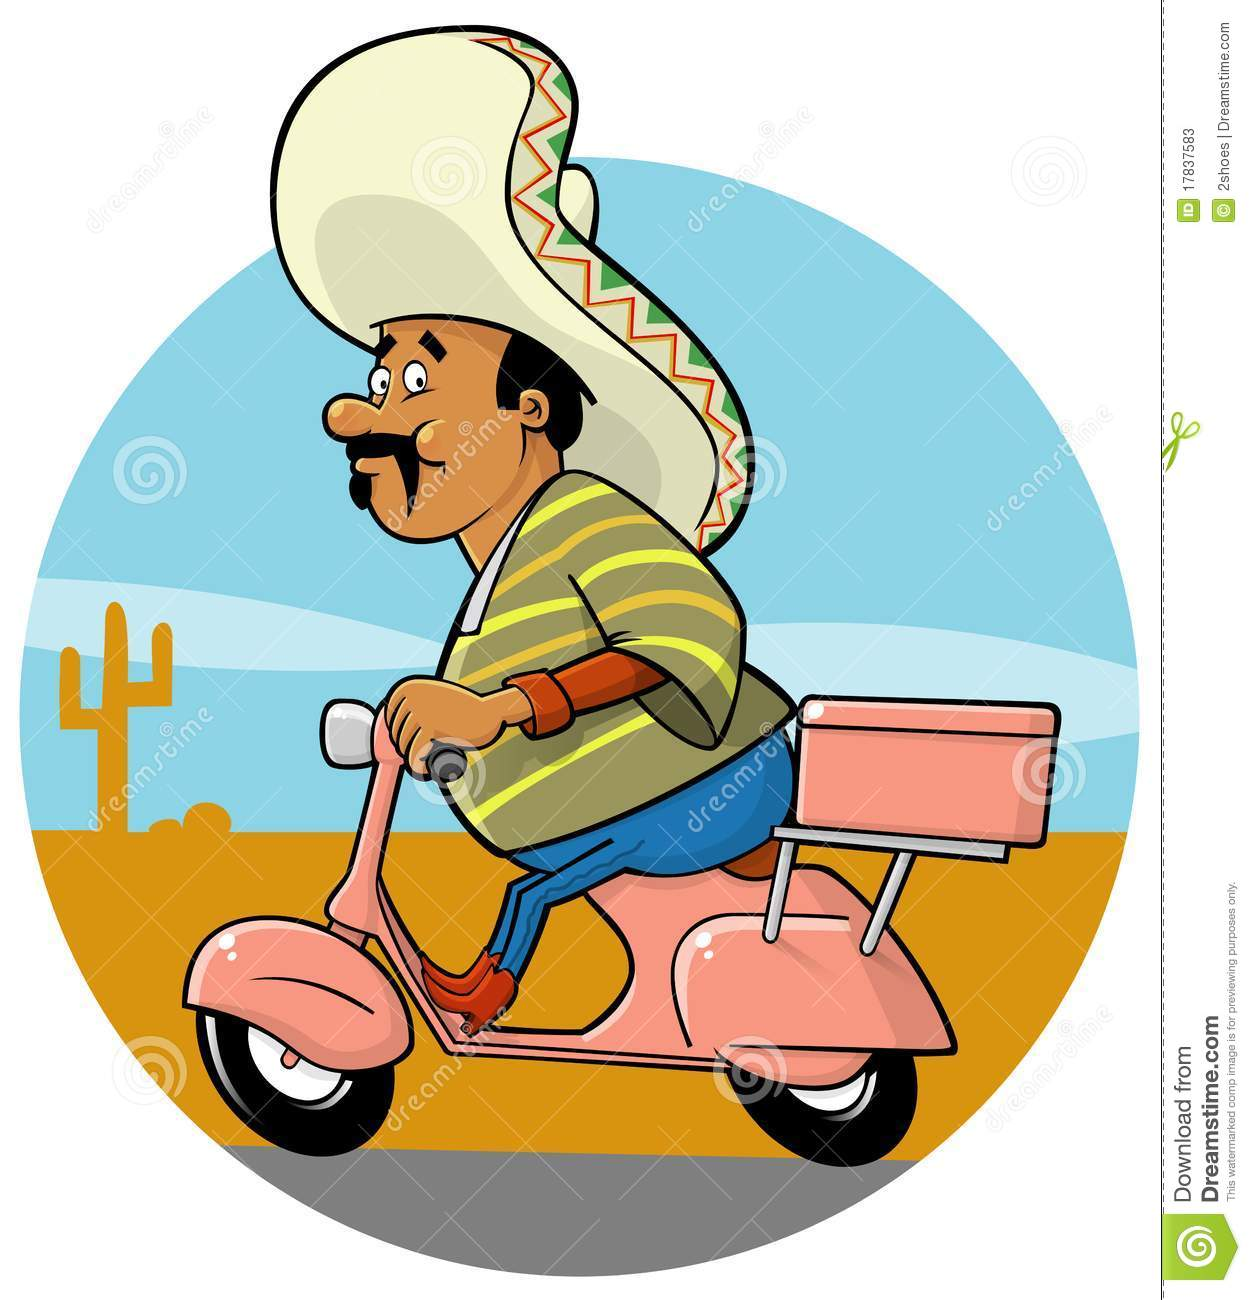 funny mexican clipart - photo #22